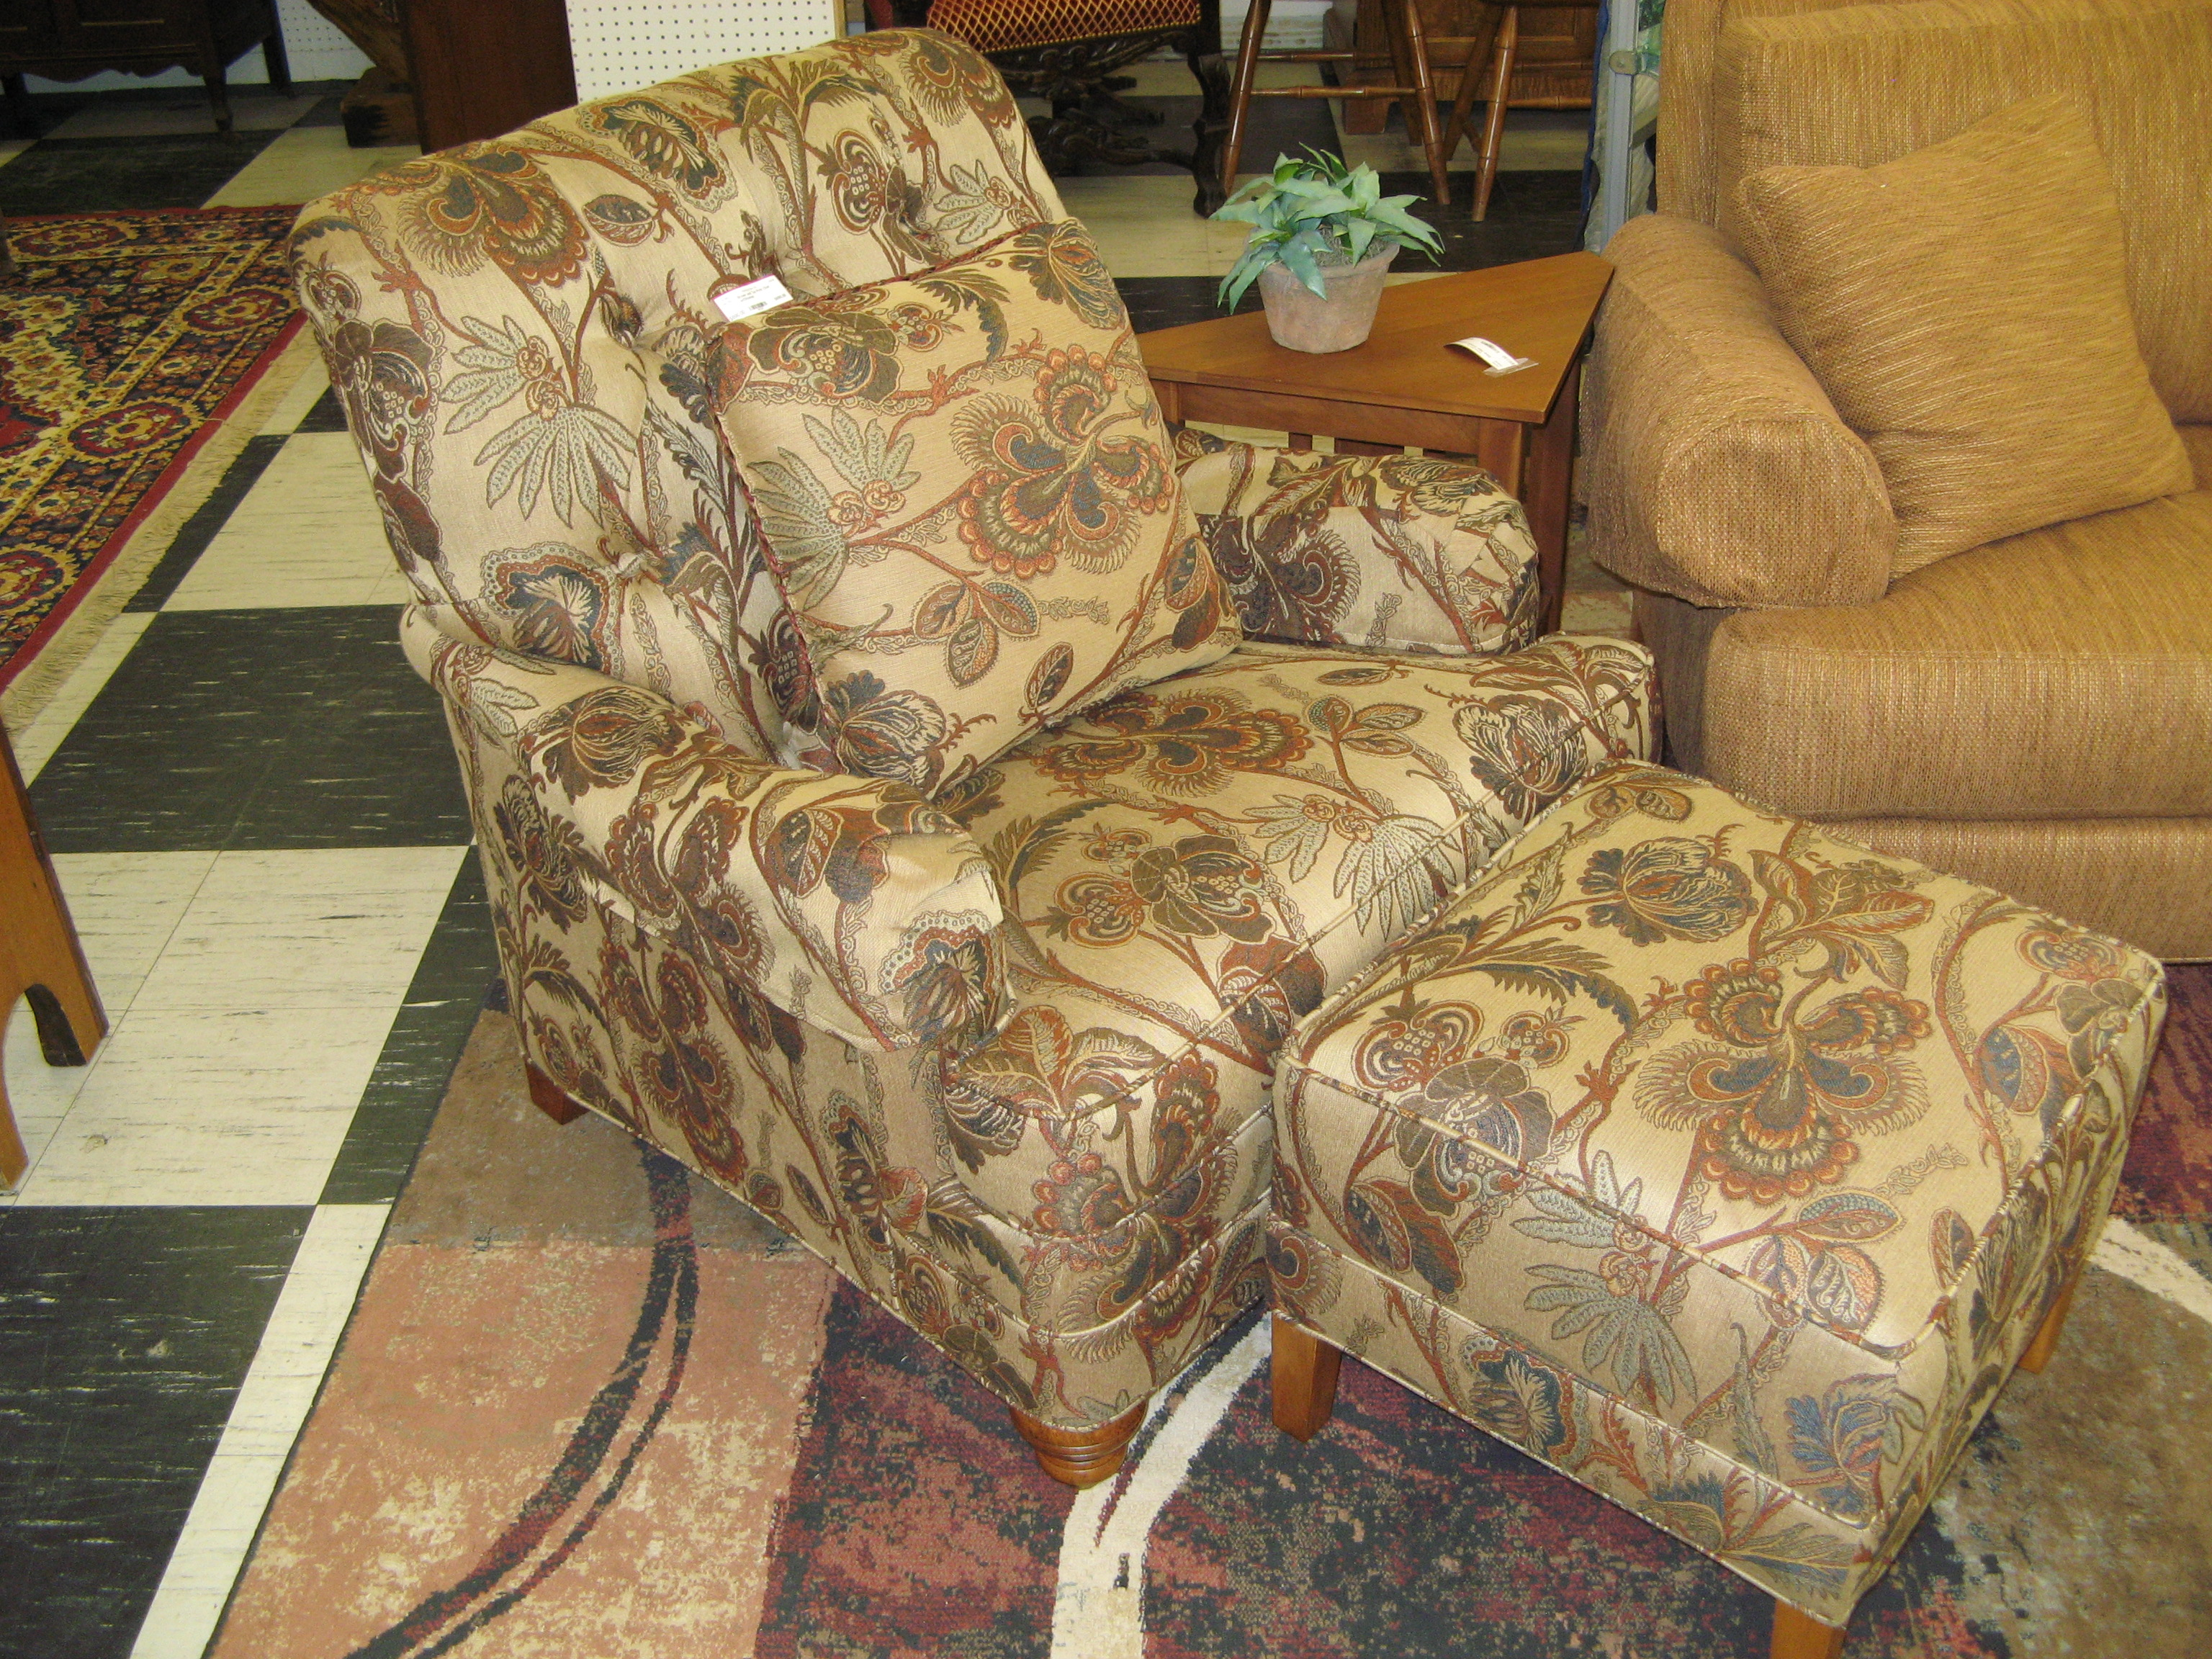 Ethan Allen Upholstered Chair w/ Ottoman - Brown, Tan, Copper & Blue